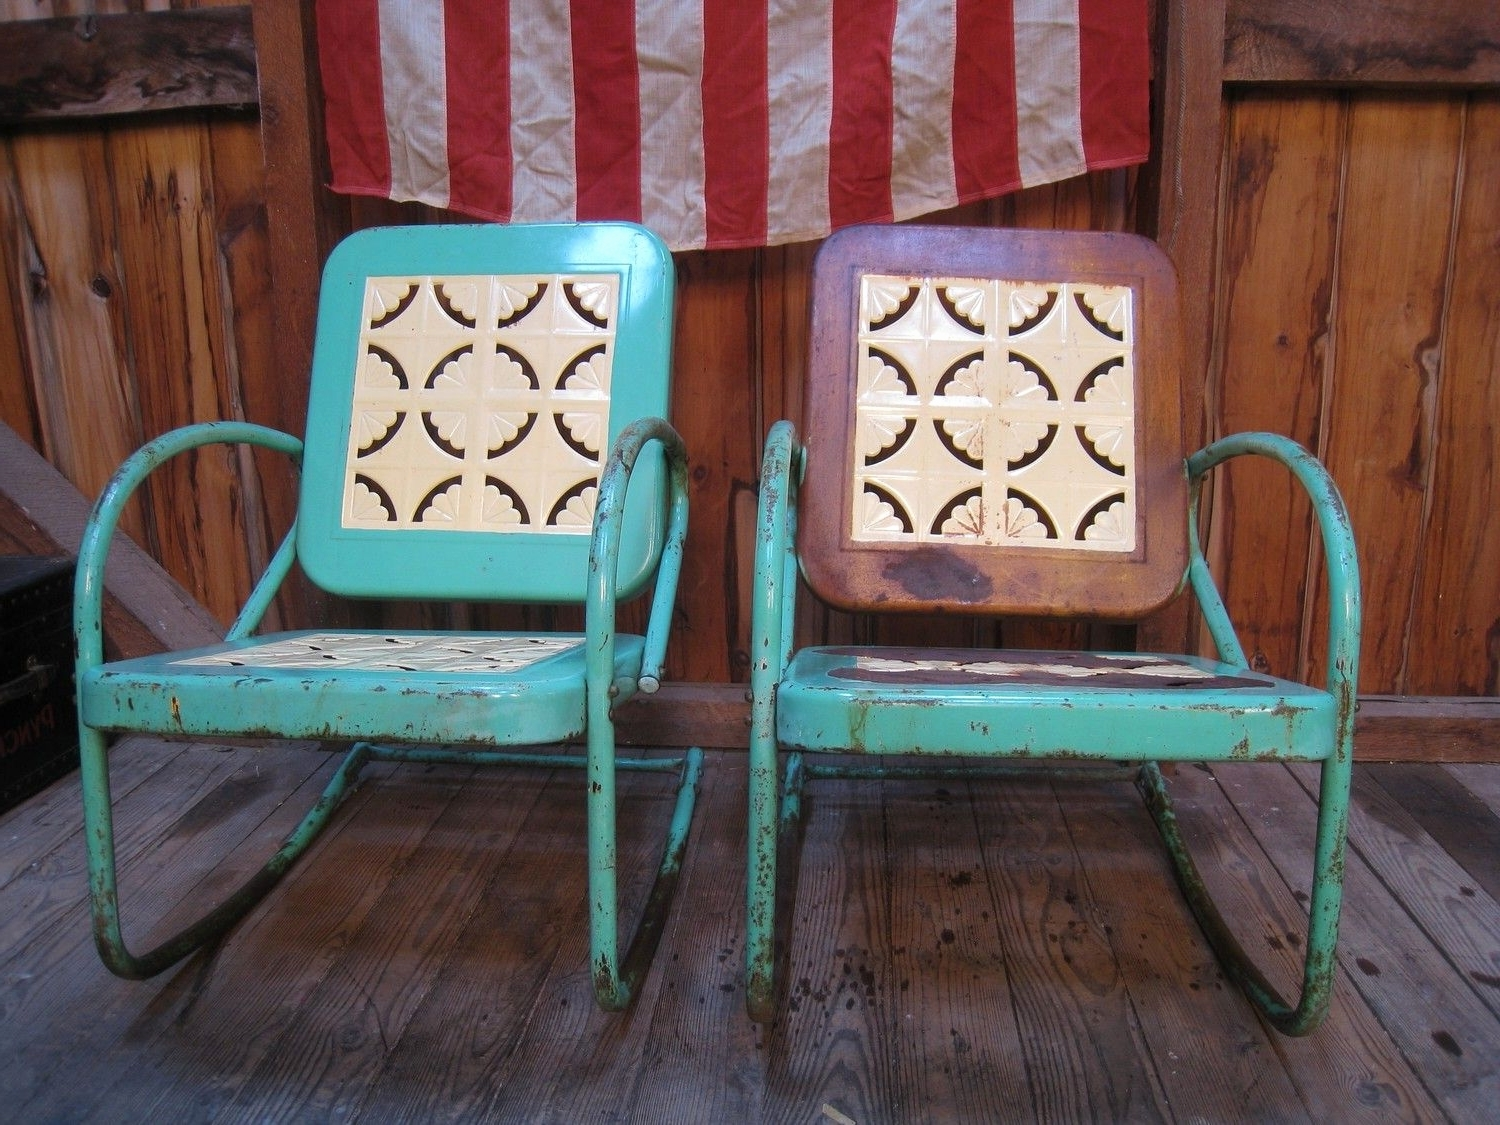 Newest Vintage Metal Rocking Patio Chairs Regarding Outdoor Metal Rocking Chair Awesome Vintage 1950s Metal Lawn Porch (View 10 of 15)